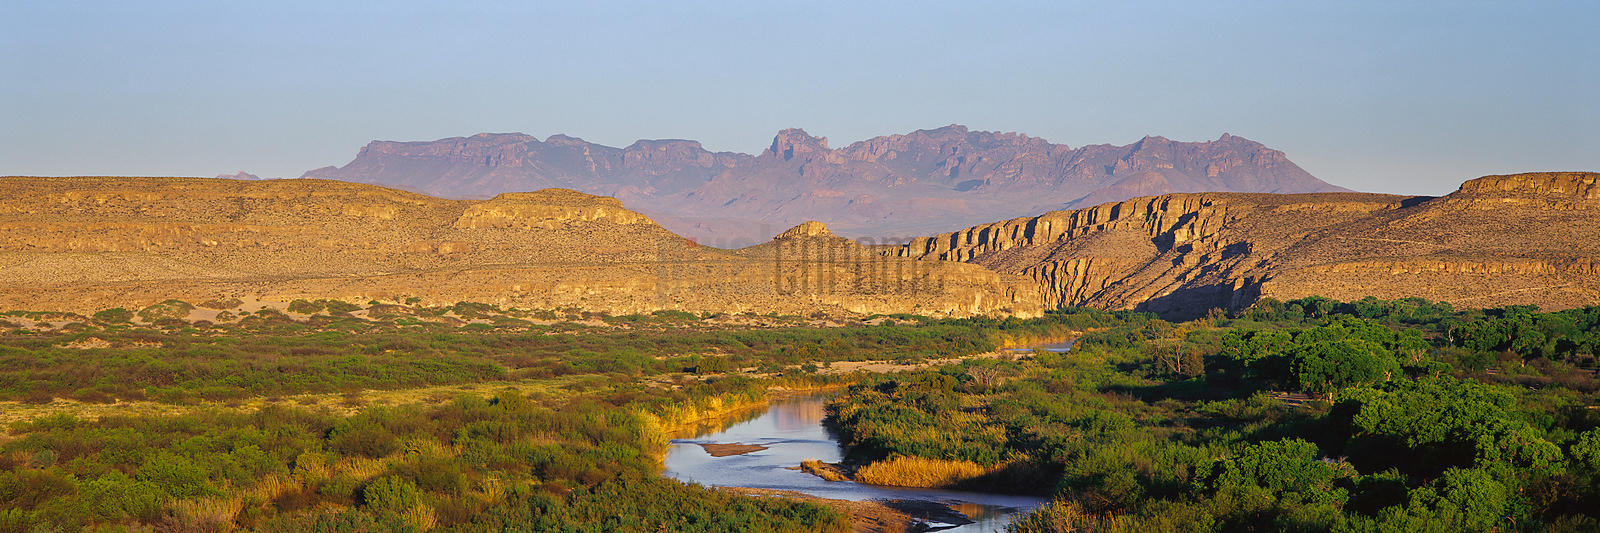 Rio Grande River and Chisos Mountains